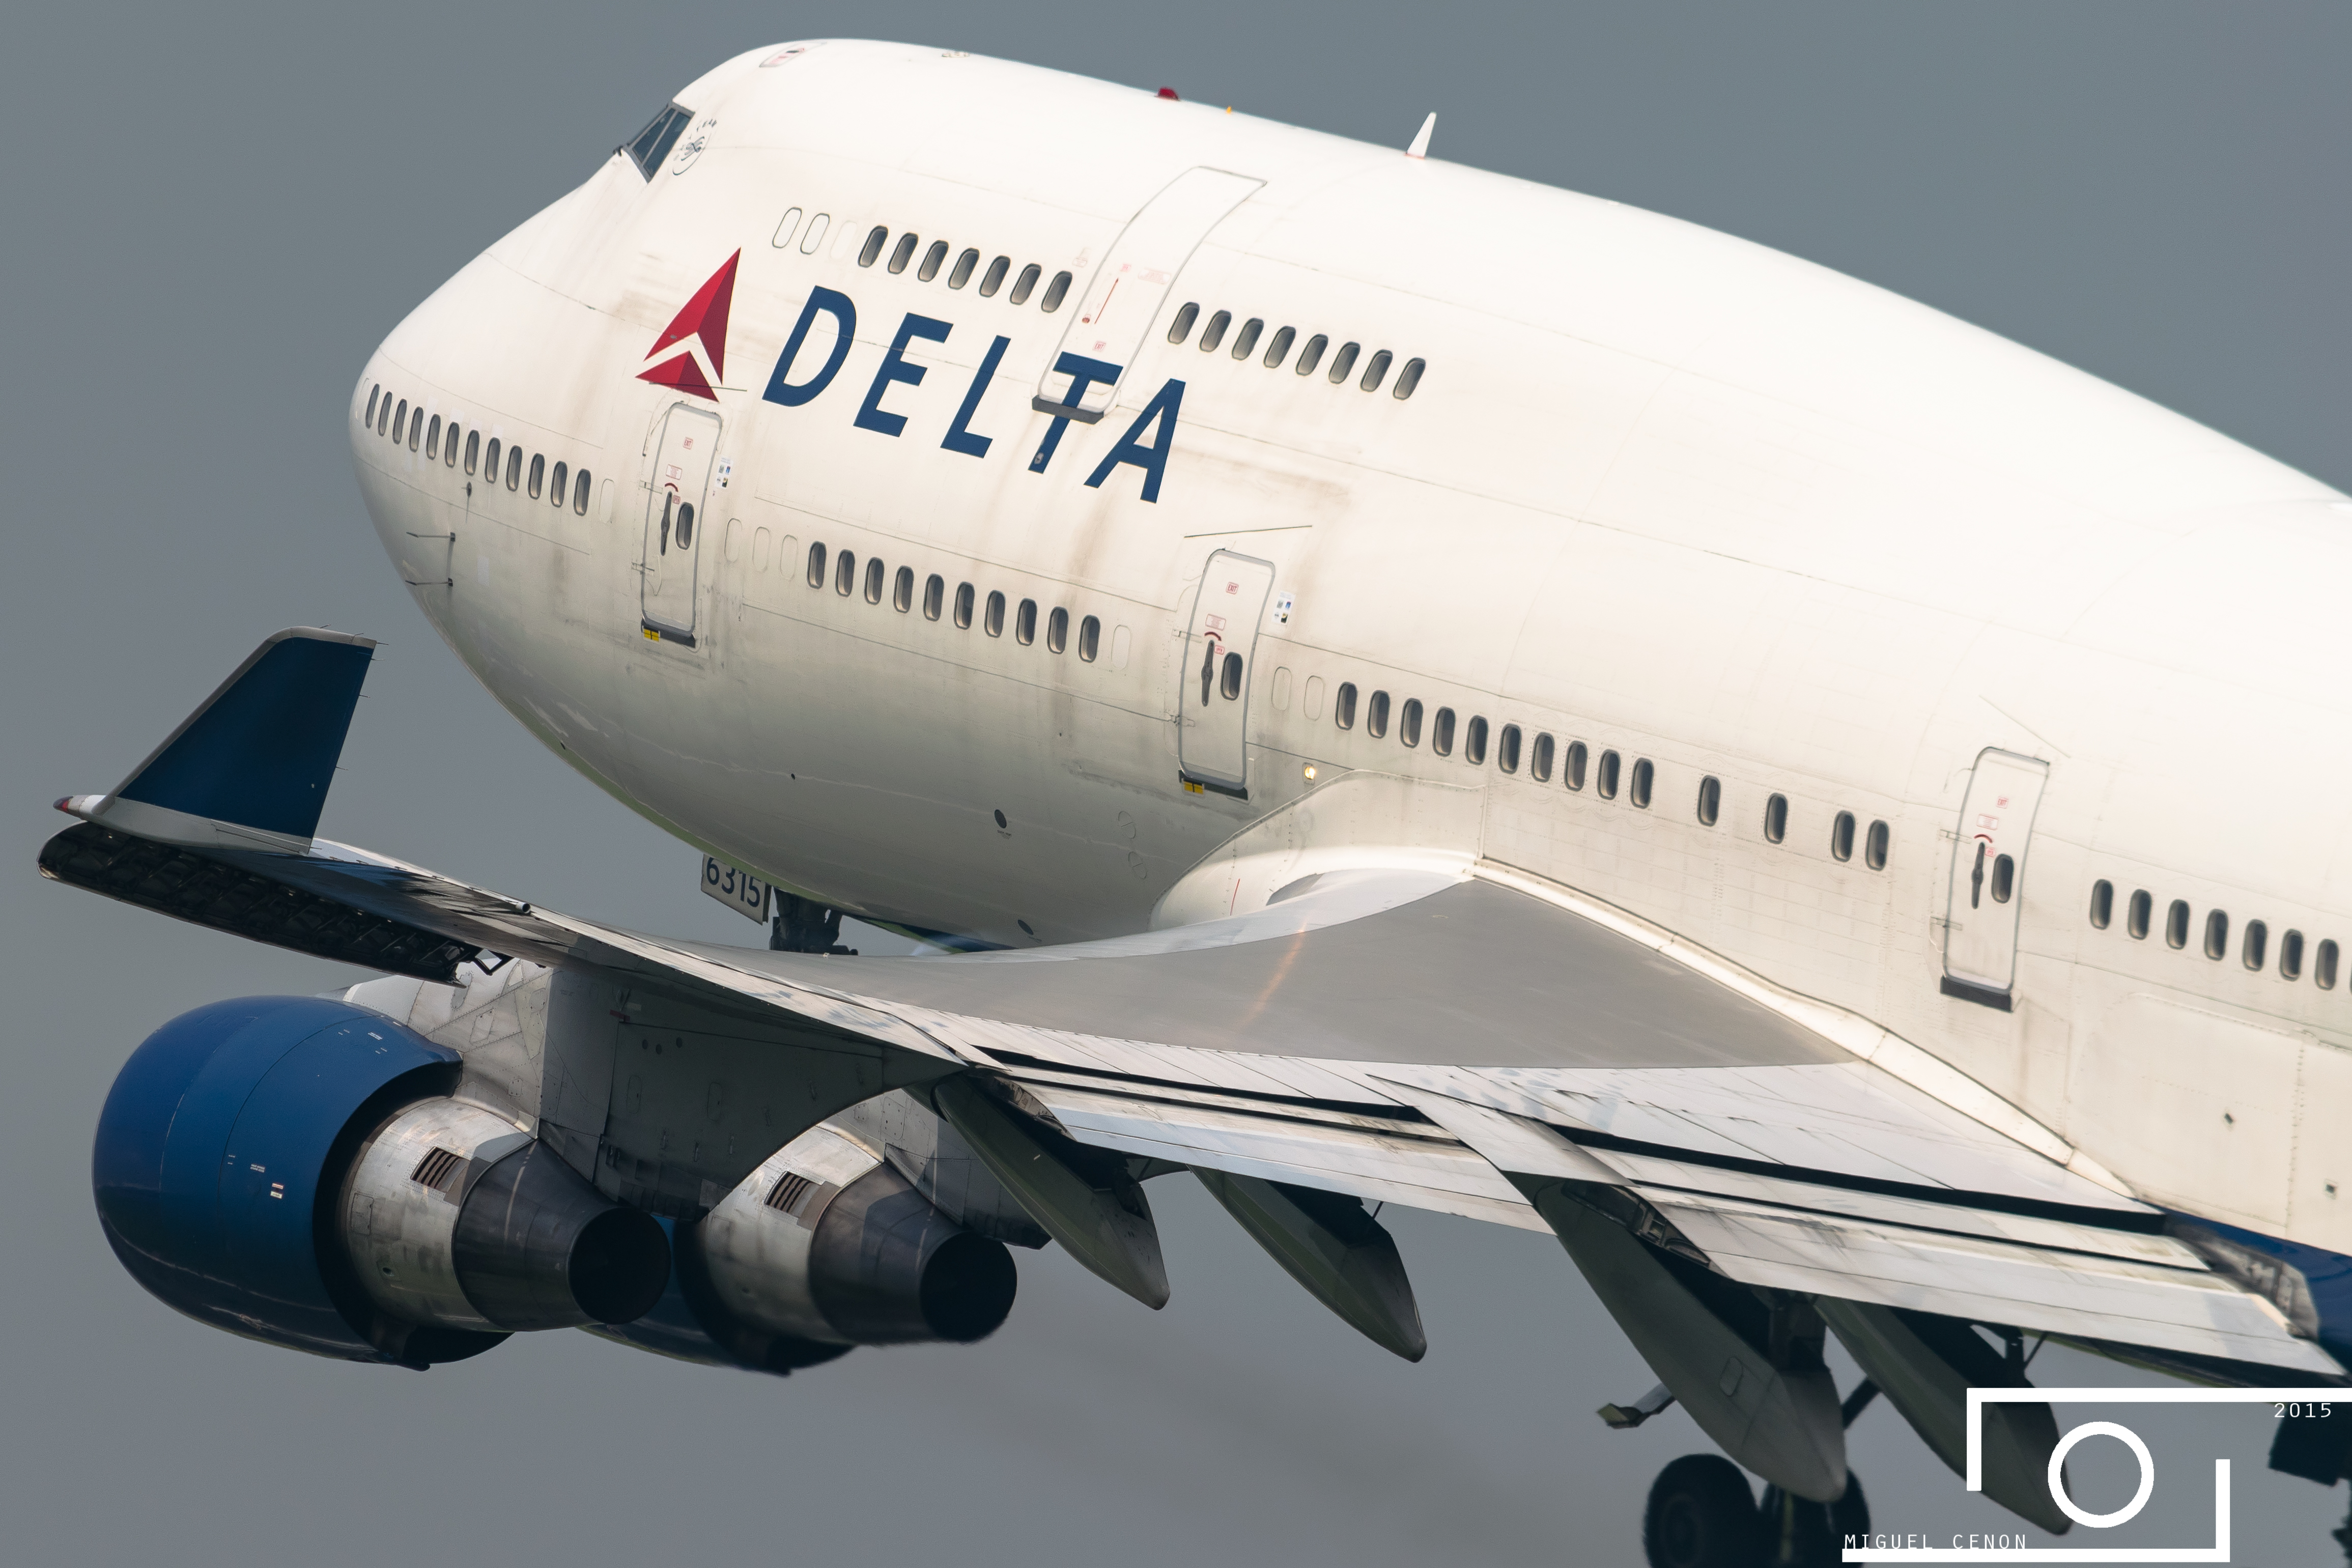 Delta Air Lines Images Diagram Writing Sample Ideas And